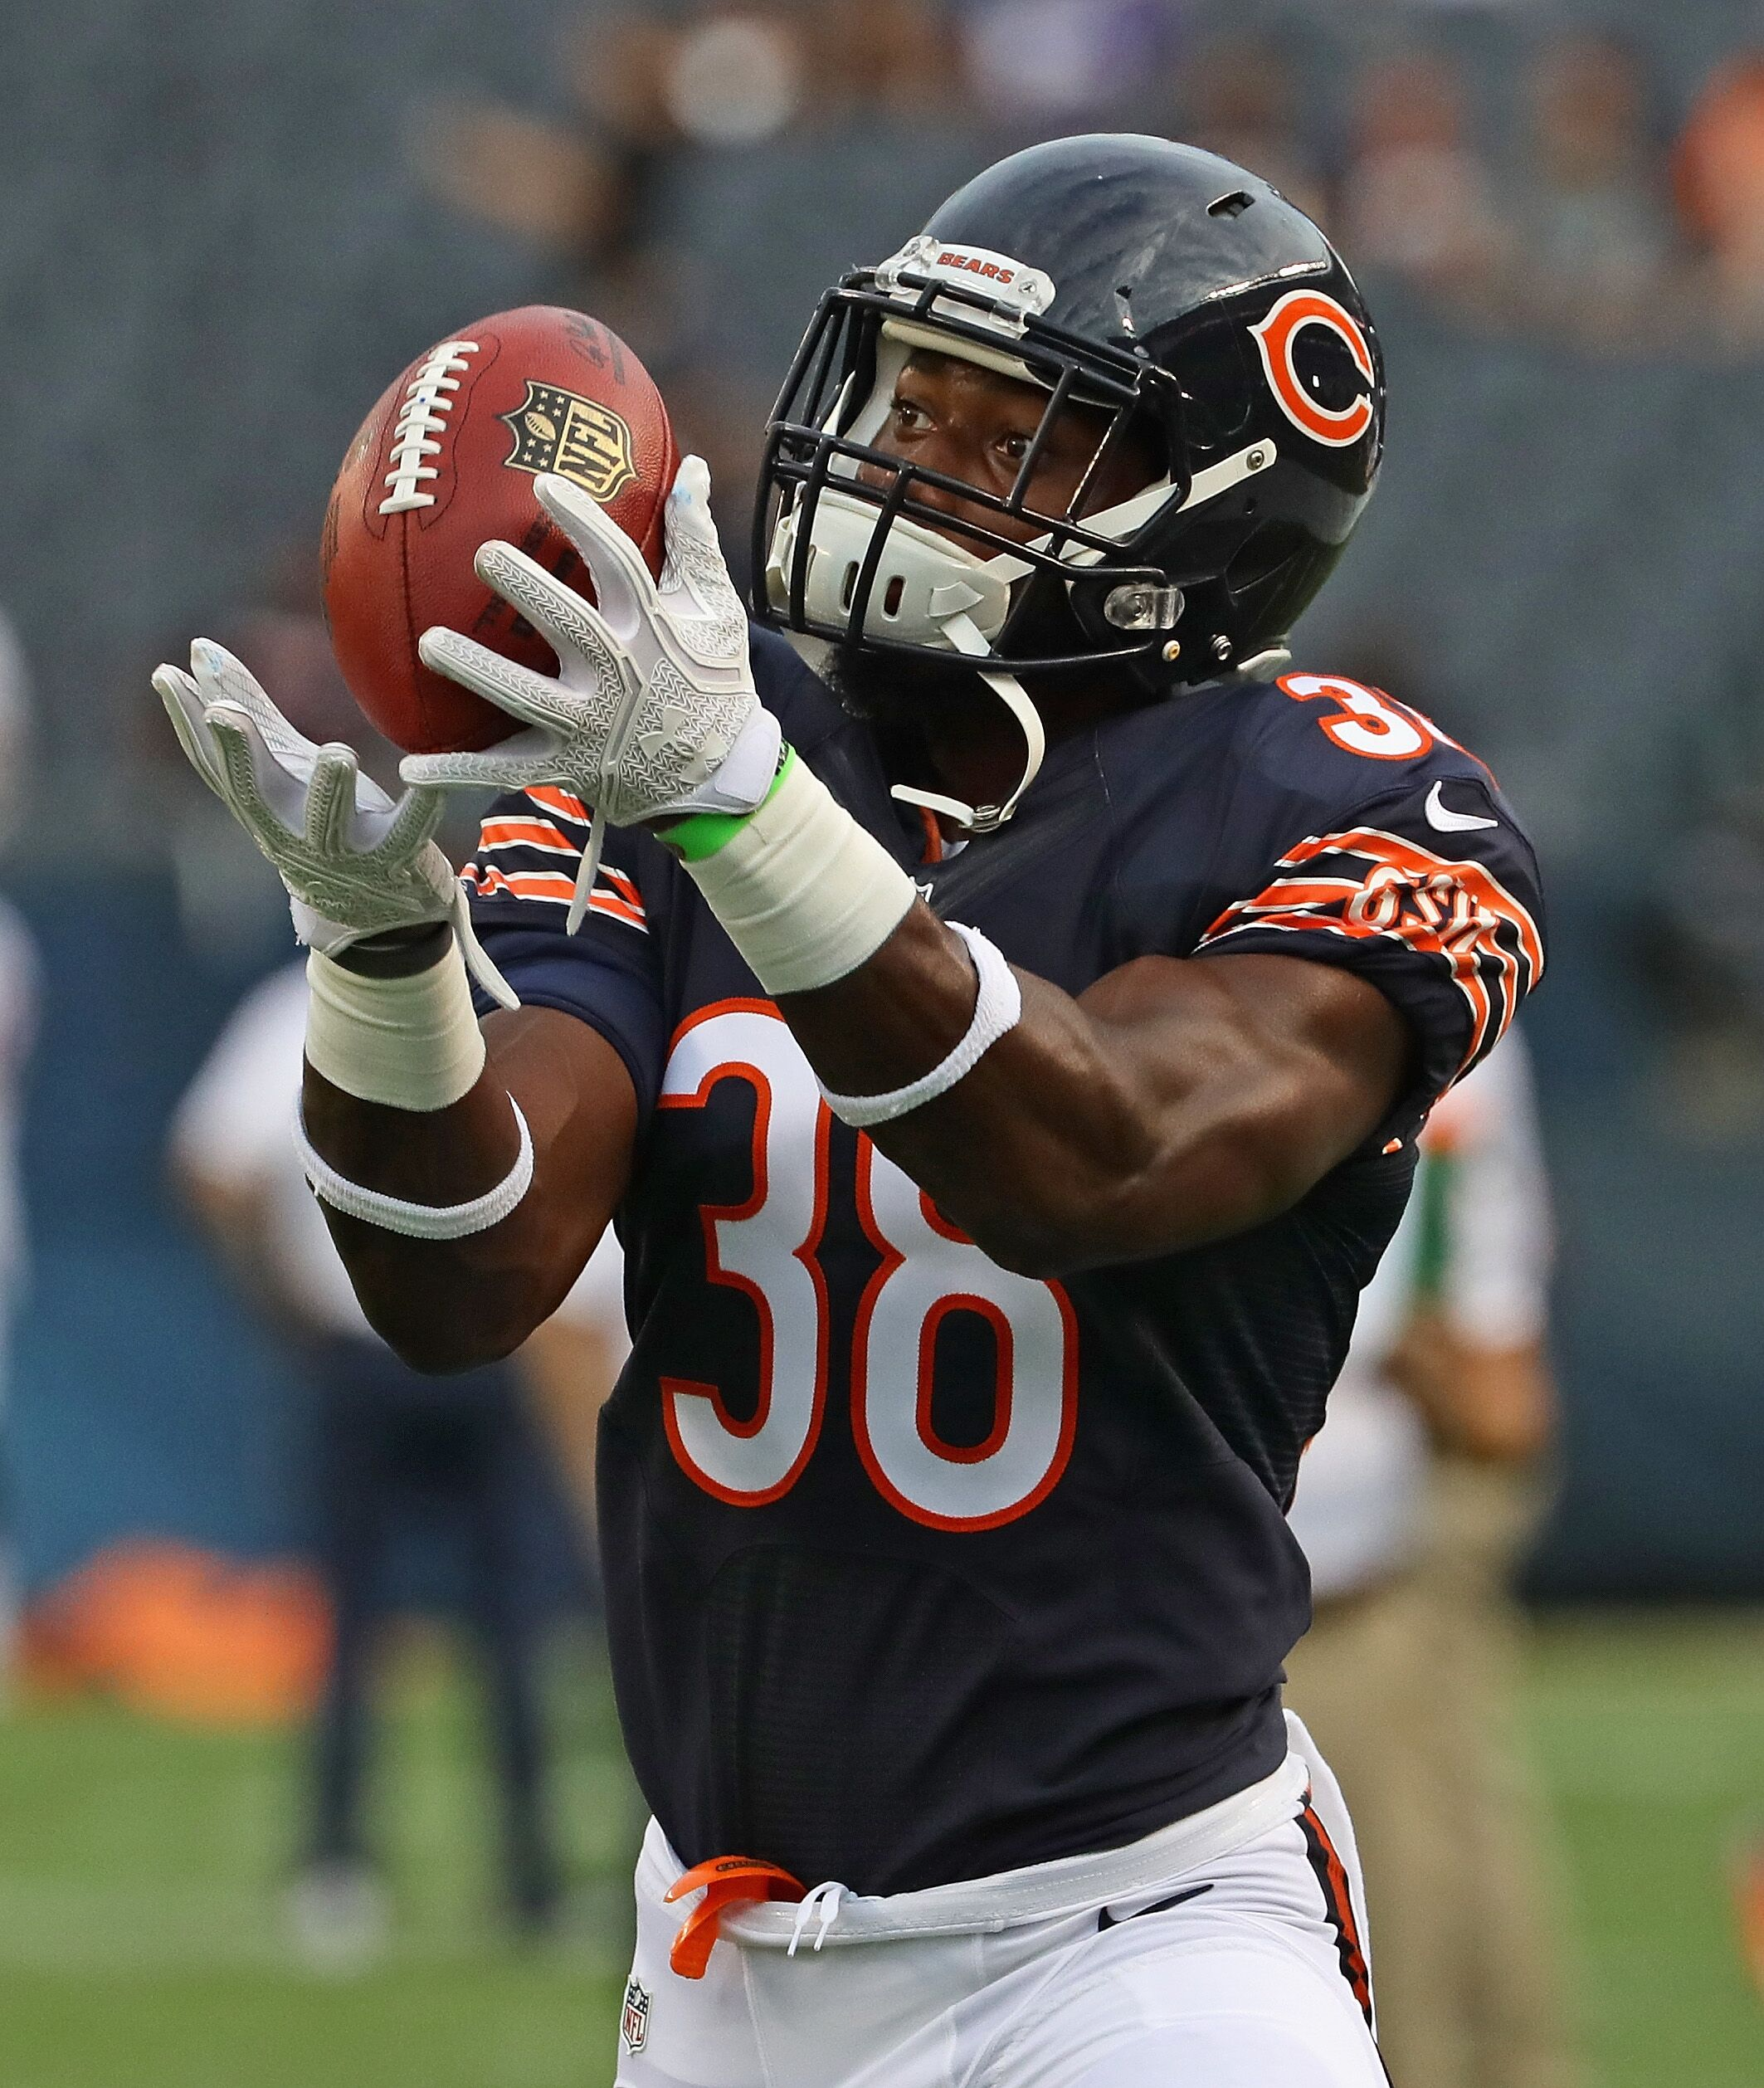 Chicago Bears Roster: Ranking The Chicago Bears Roster: 30-21